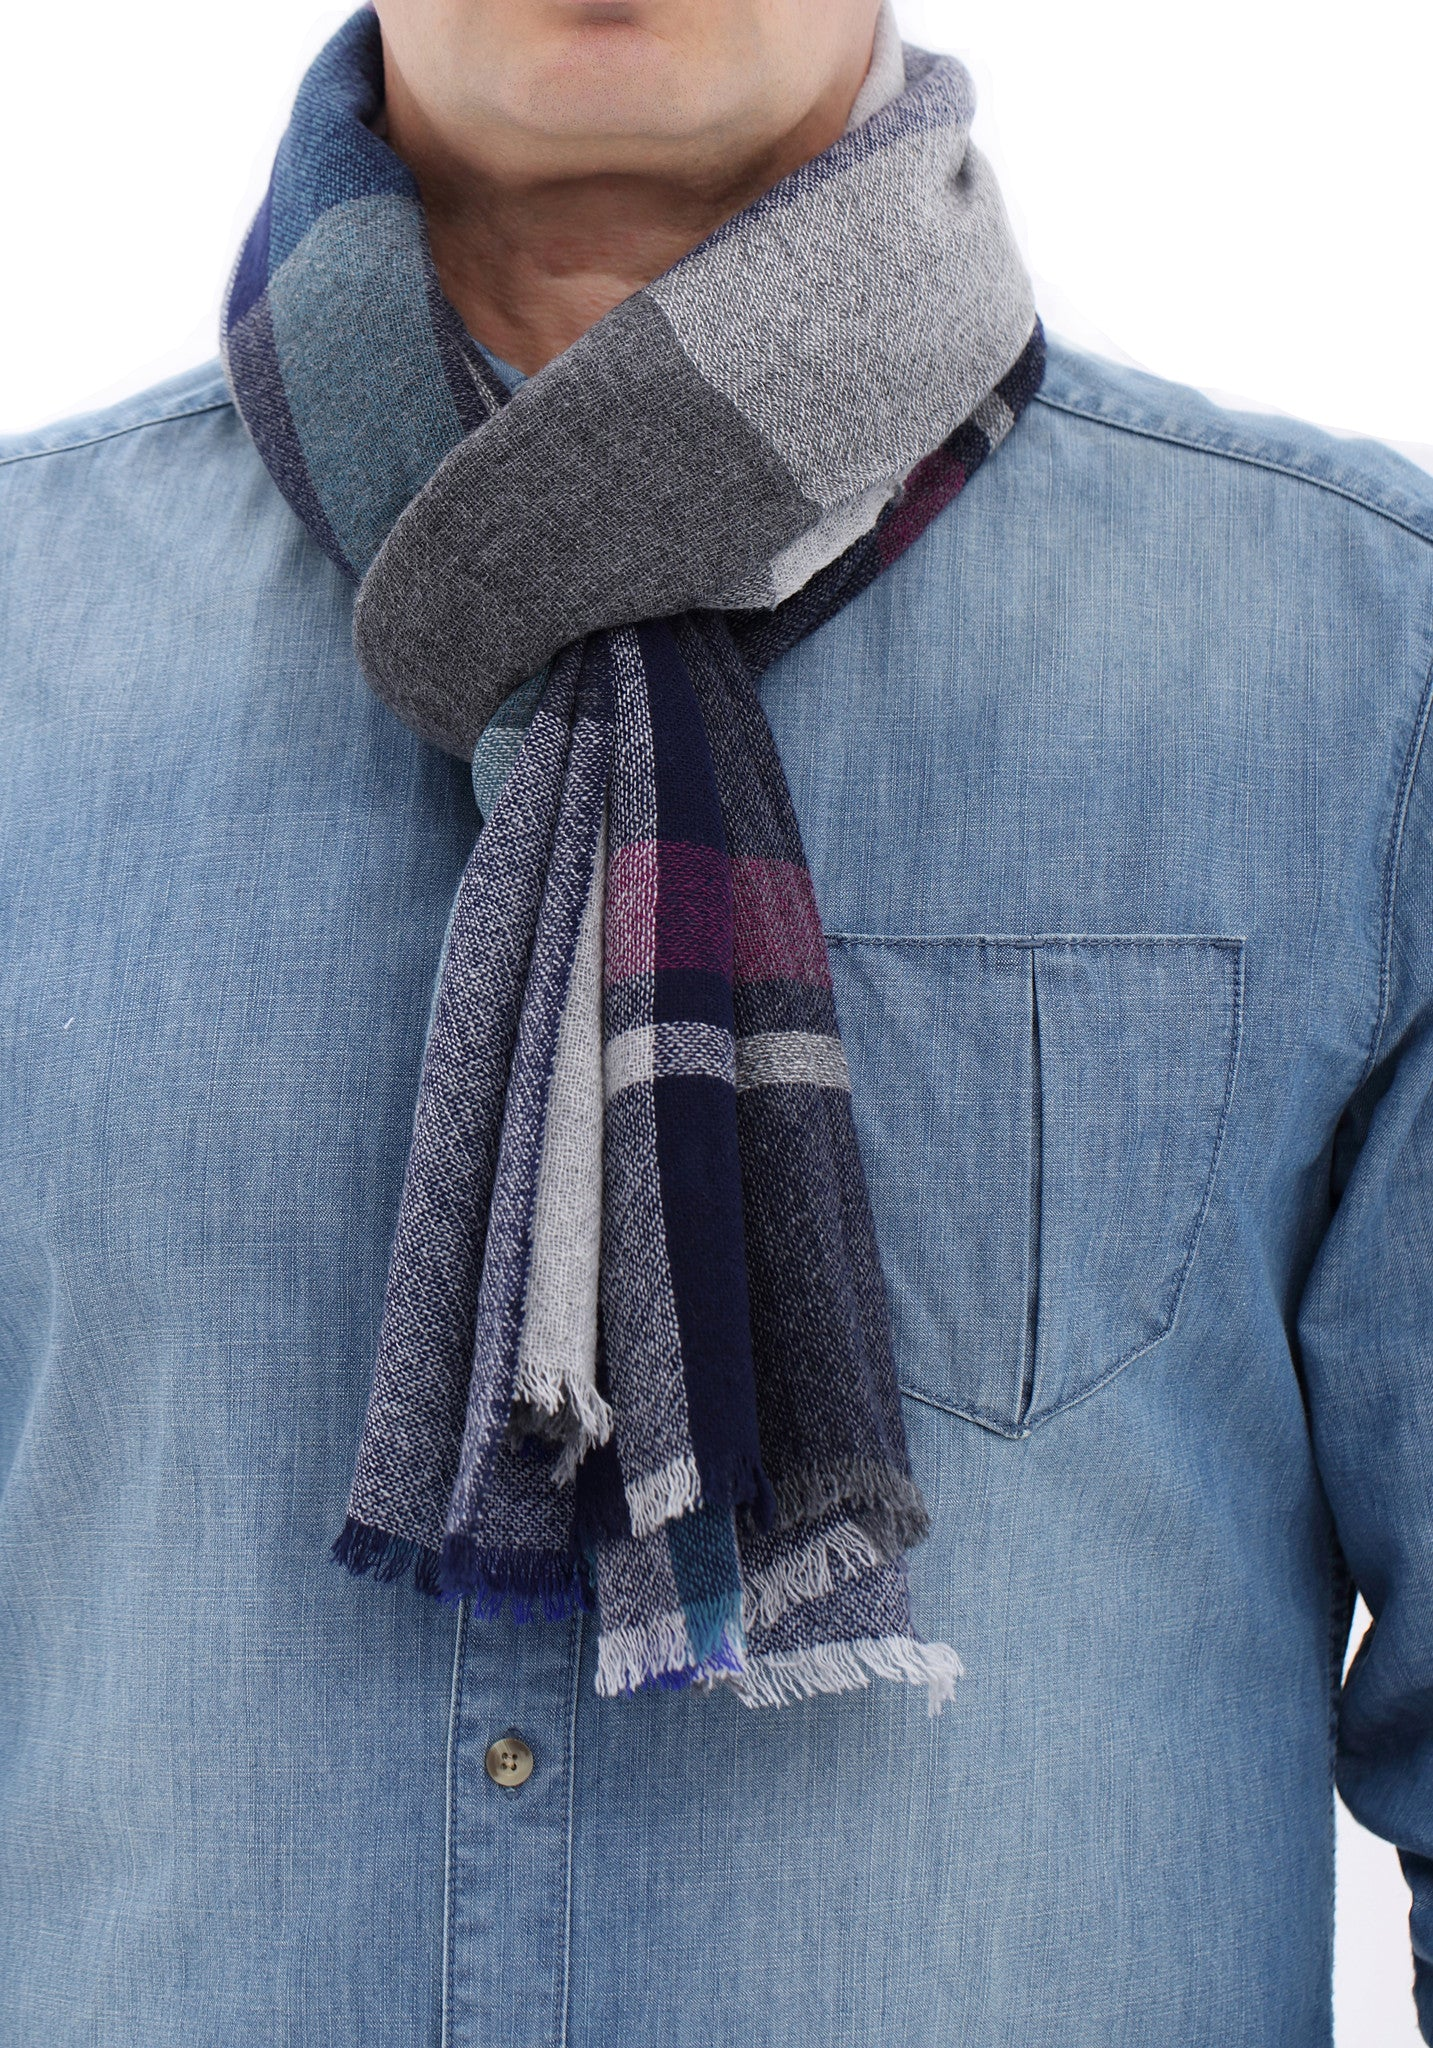 Cashmere Scarves: grounwhijwgg.cf - Your Online Scarves & Wraps Store! Get 5% in rewards with Club O! skip to main content. Registries Gift Cards. Black / Hot Pink Leopard Print % Cashmere Winter Scarf. Quick View.